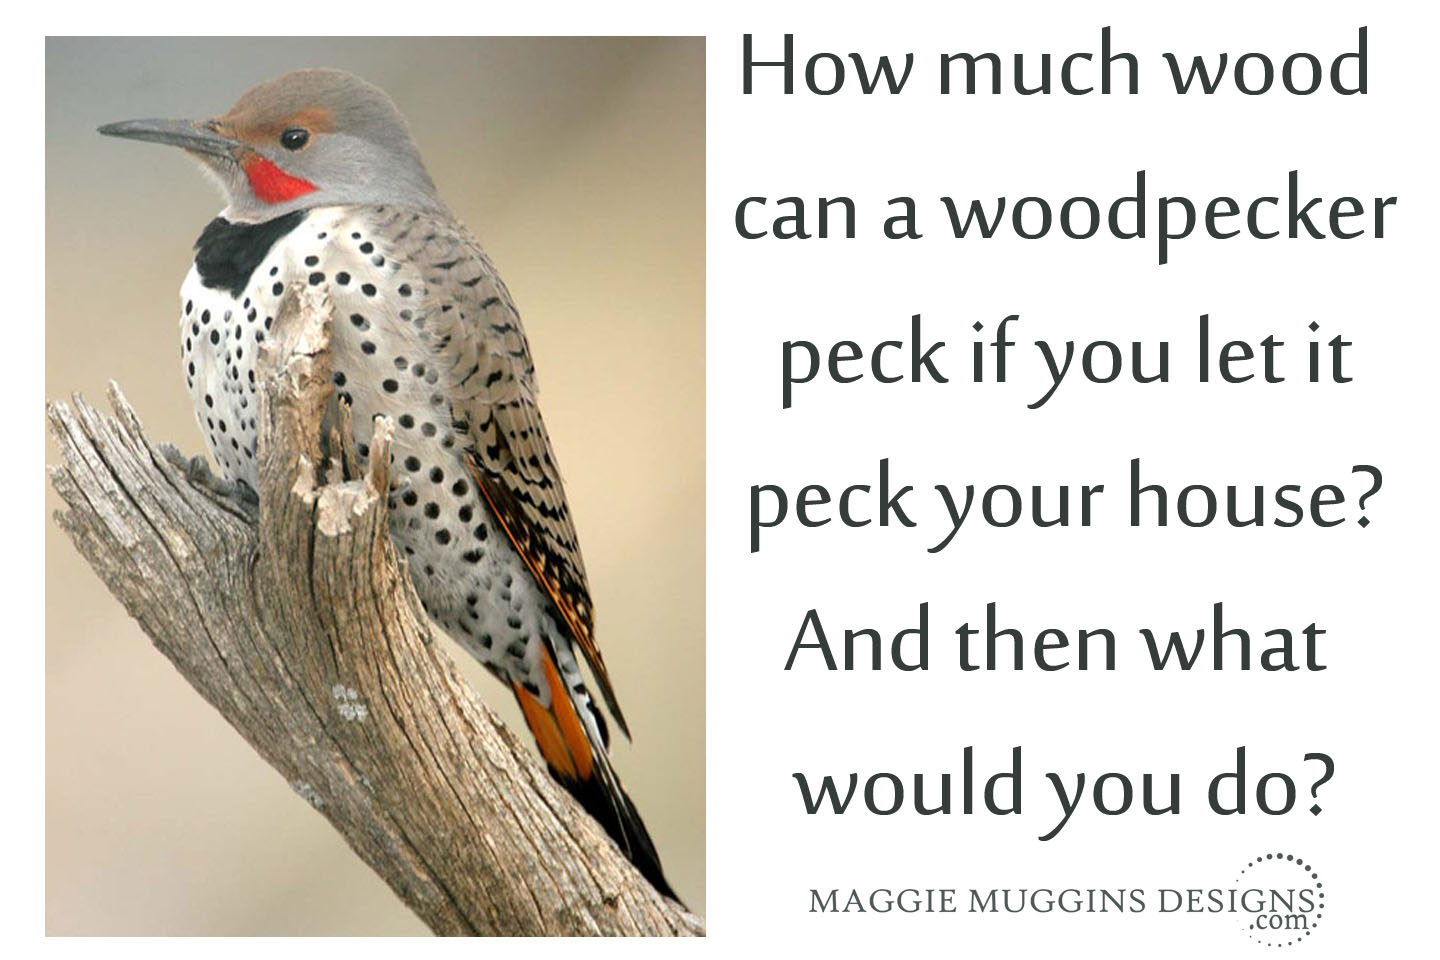 Woodpecker Solution